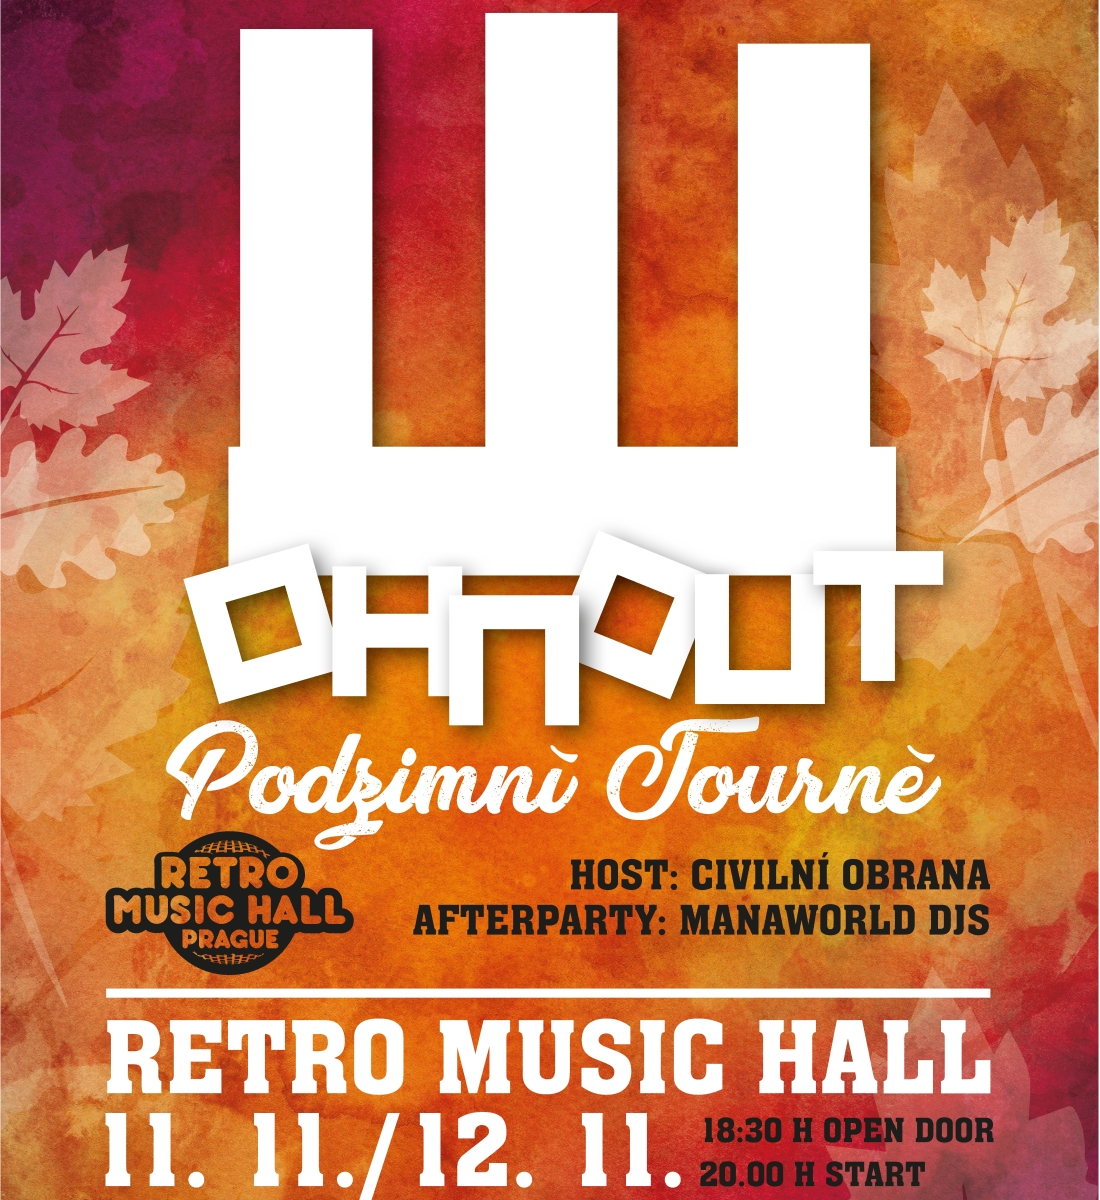 Wohnout v Retro Music Hall